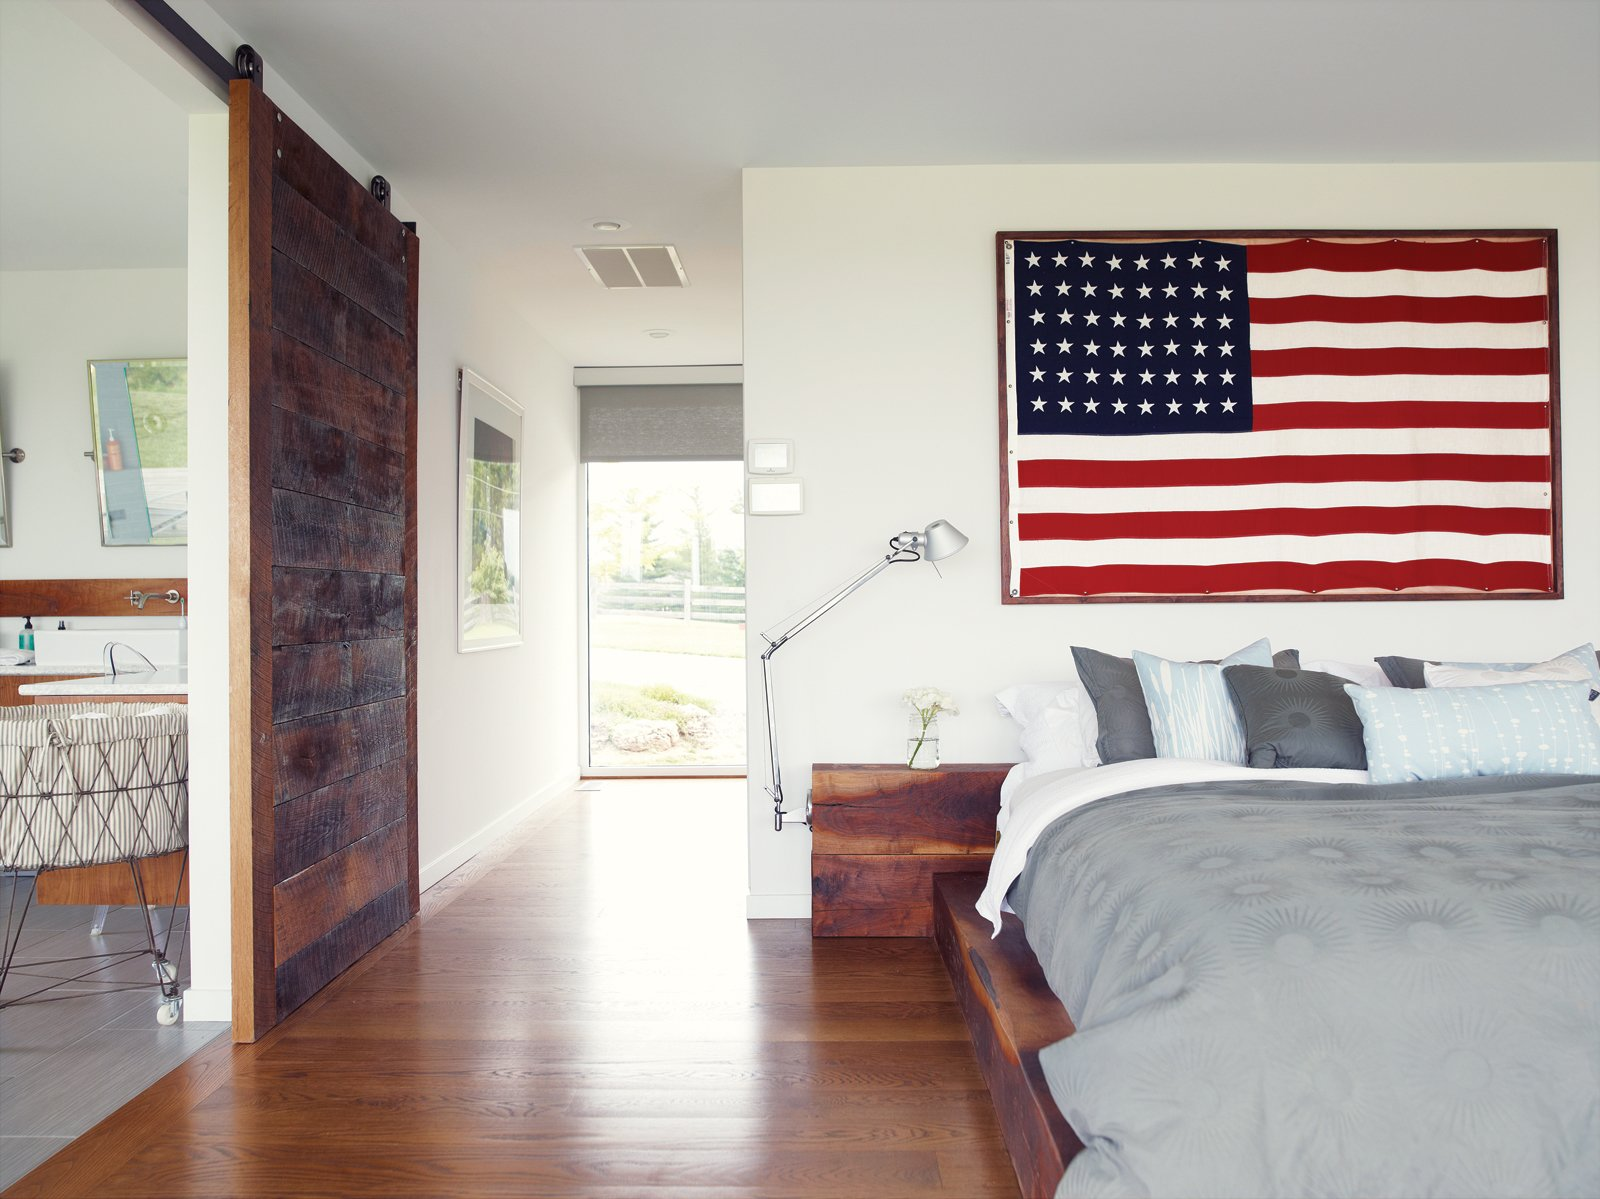 He built the walnut bed and nightstands in the master bedroom with the help of Hannah's two brothers. One of his clients at his hair salon gave him the American flag; the bedside lights are Tolomeo classic wall lamps by Artemide. The bed linens are   from Inhabit. A sliding barn door rolls sideways to reveal the bathroom.